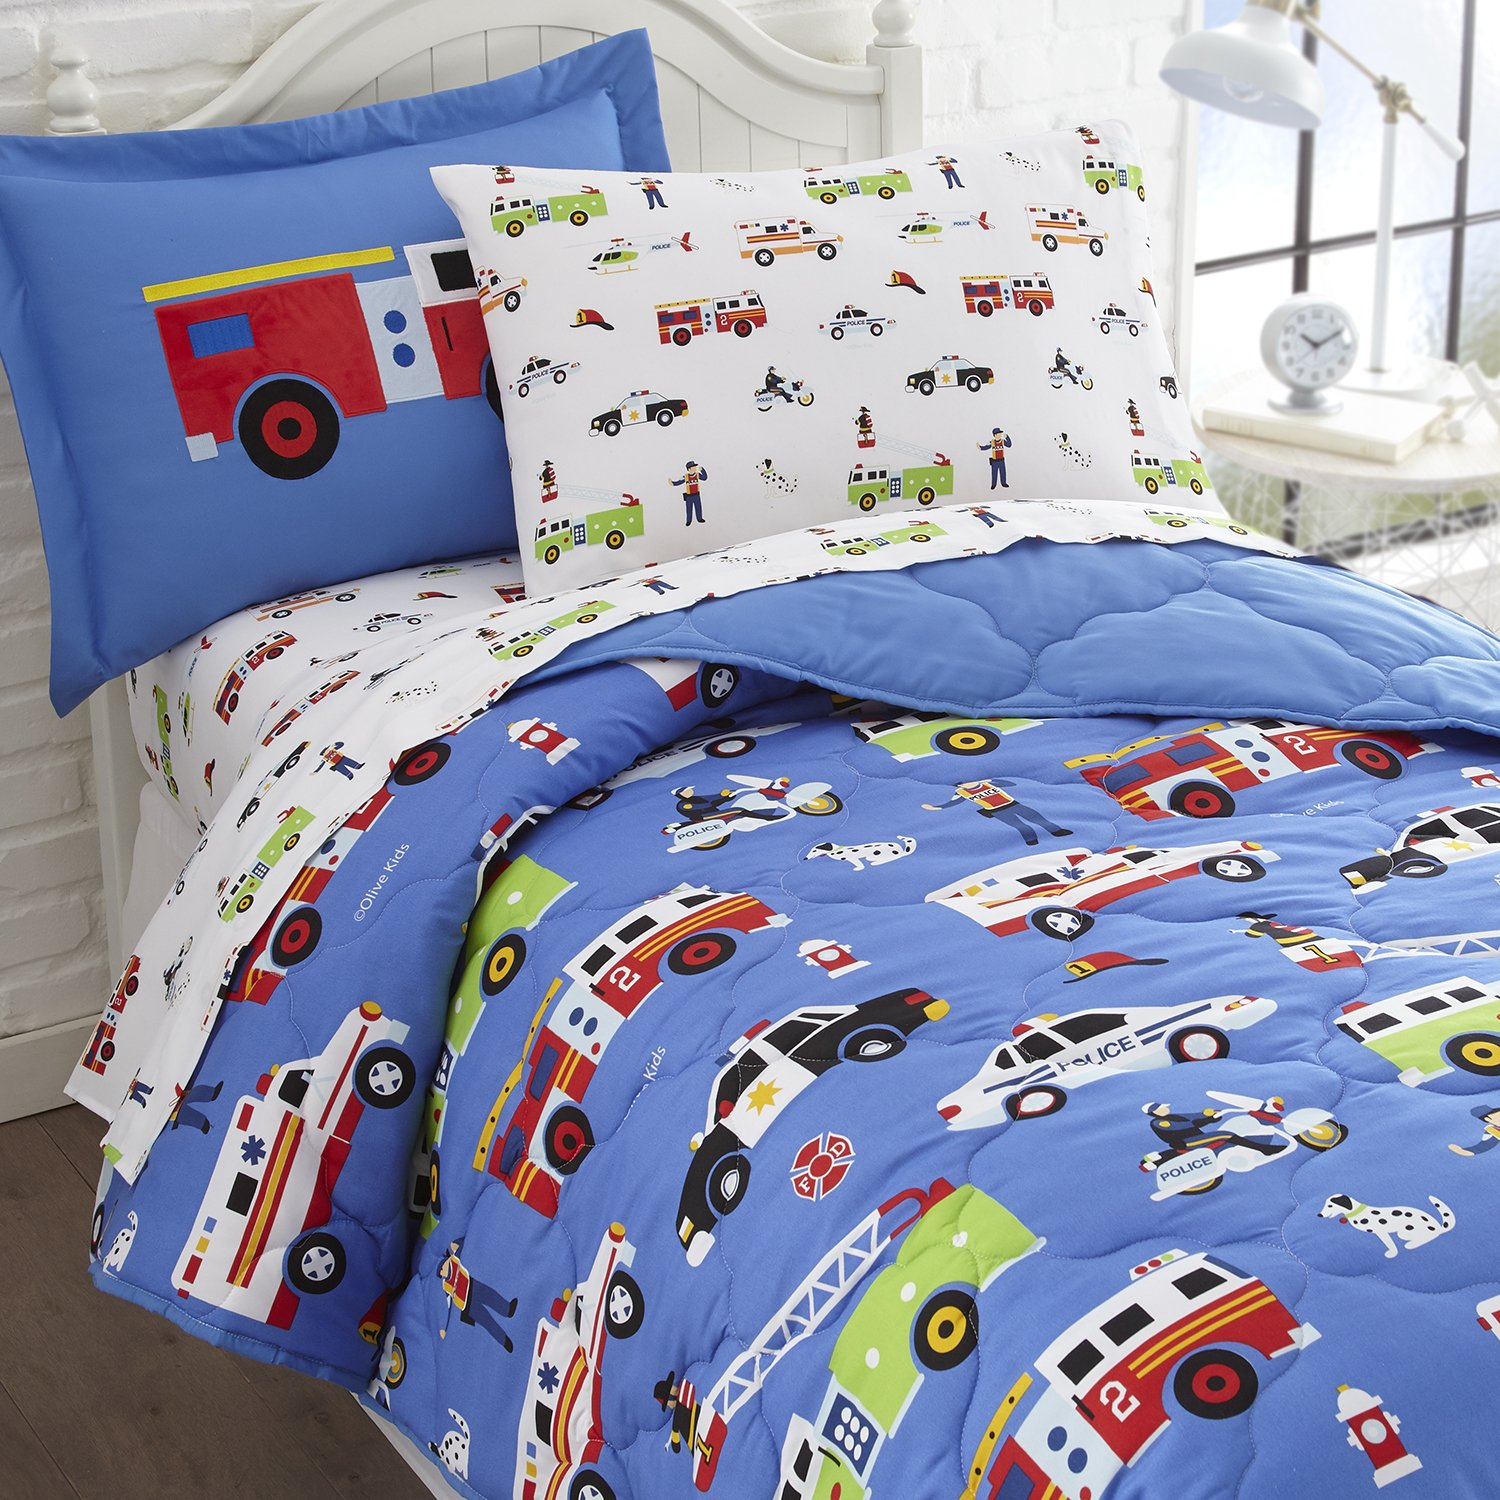 Flat Sheet Wildkin 7 Piece Full Bed-in-A-Bag On The Go 16690 and Two Embroidered Shams Two Pillowcases Includes Comforter 100/% Microfiber Bedding Set Olive Kids Design Fitted Sheet